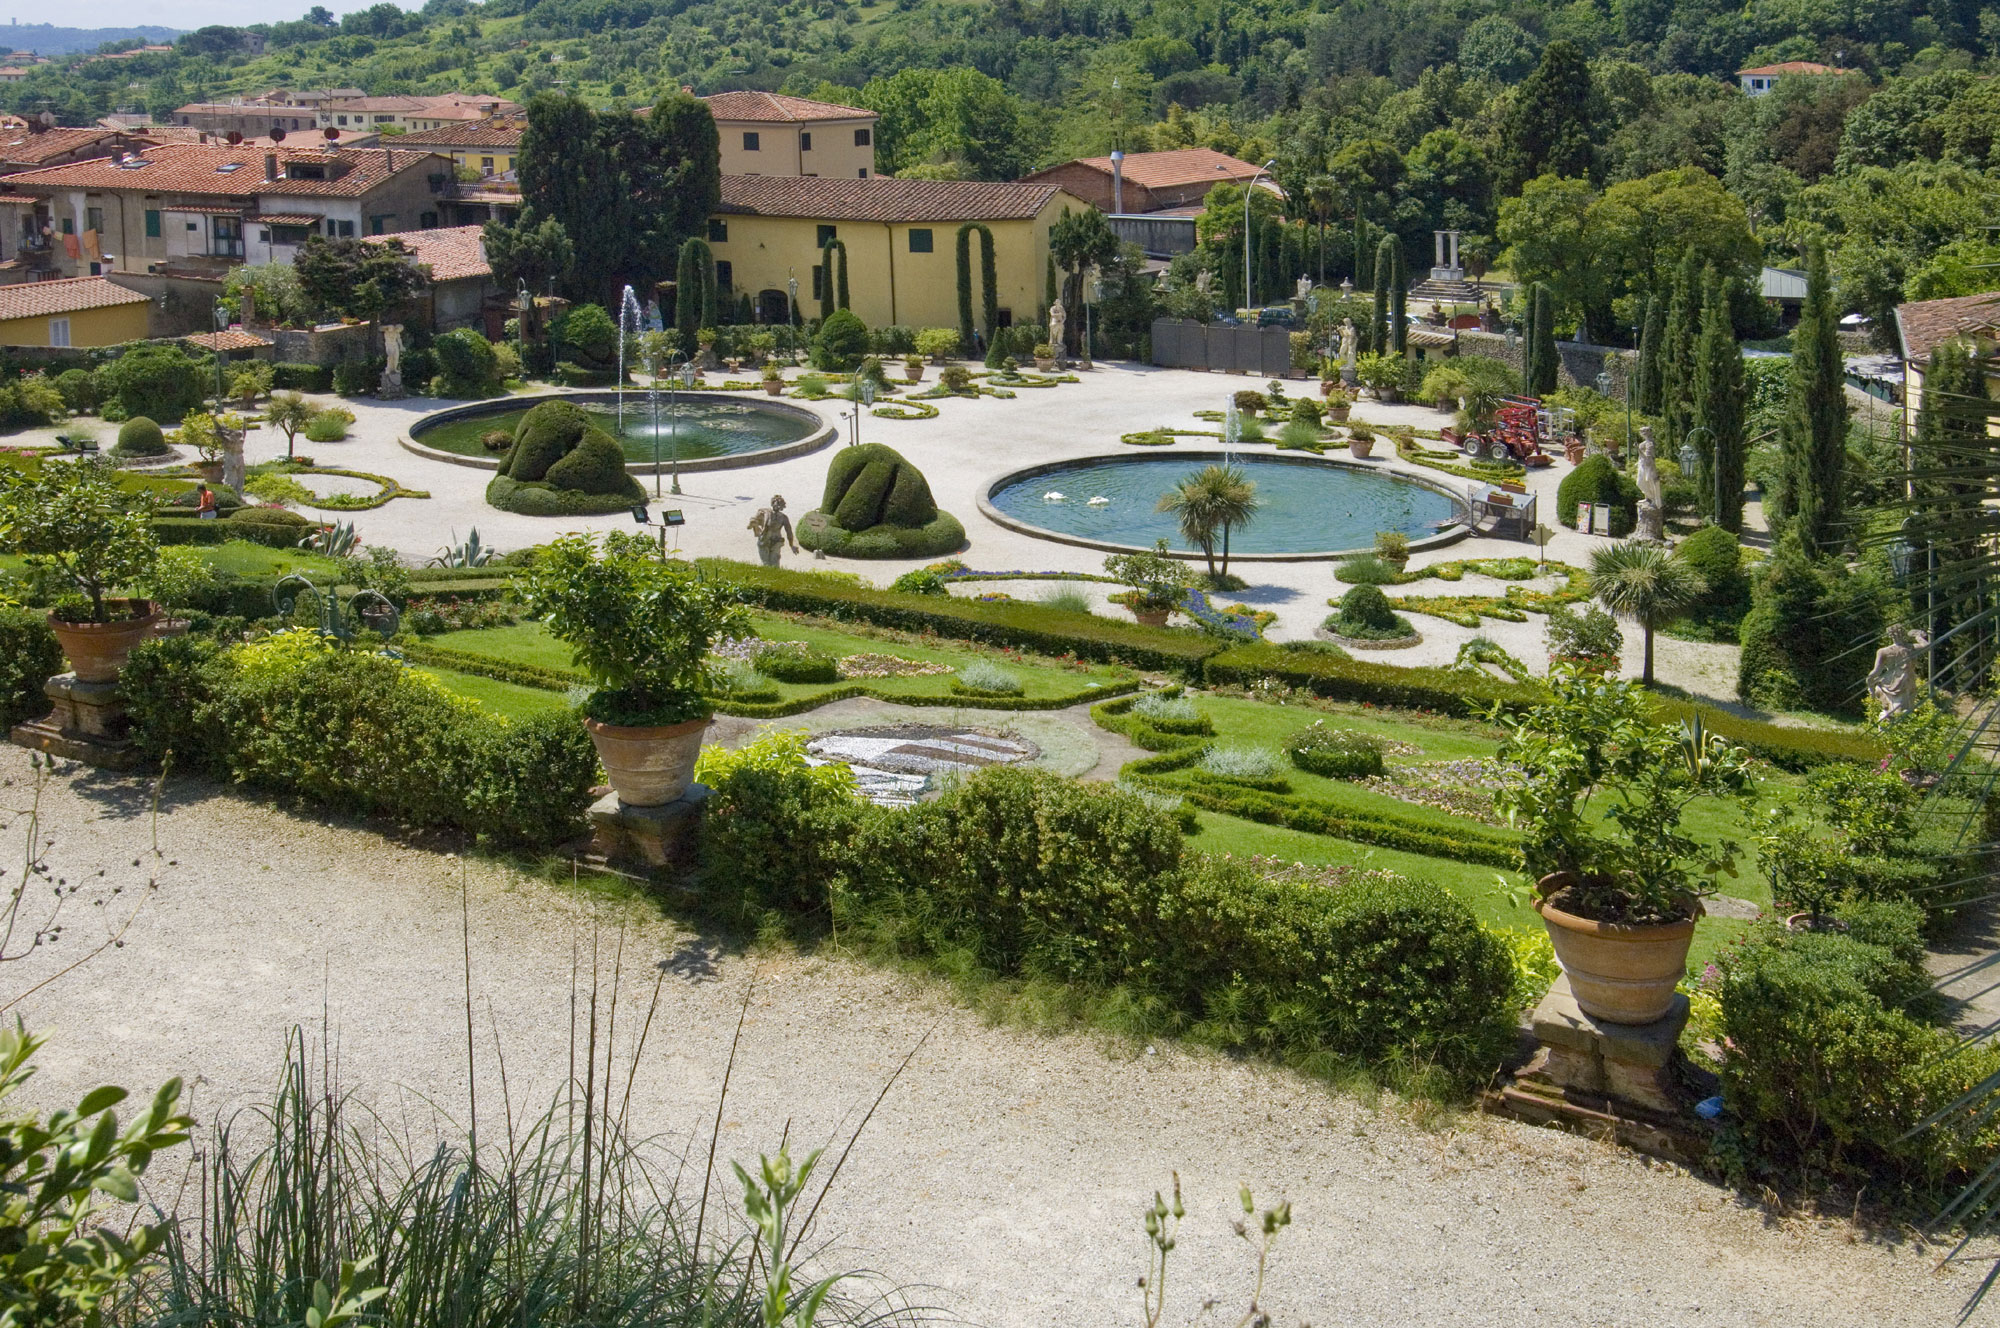 Villa Garzoni Pinocchio, a magnificent baroque villa near Lucca, Tuscany, was the childhood home of Carlo Lorenzini (better known as Carlo Collodi) and the place of inspiration for this most famous work, The Adventures of Pinocchio.